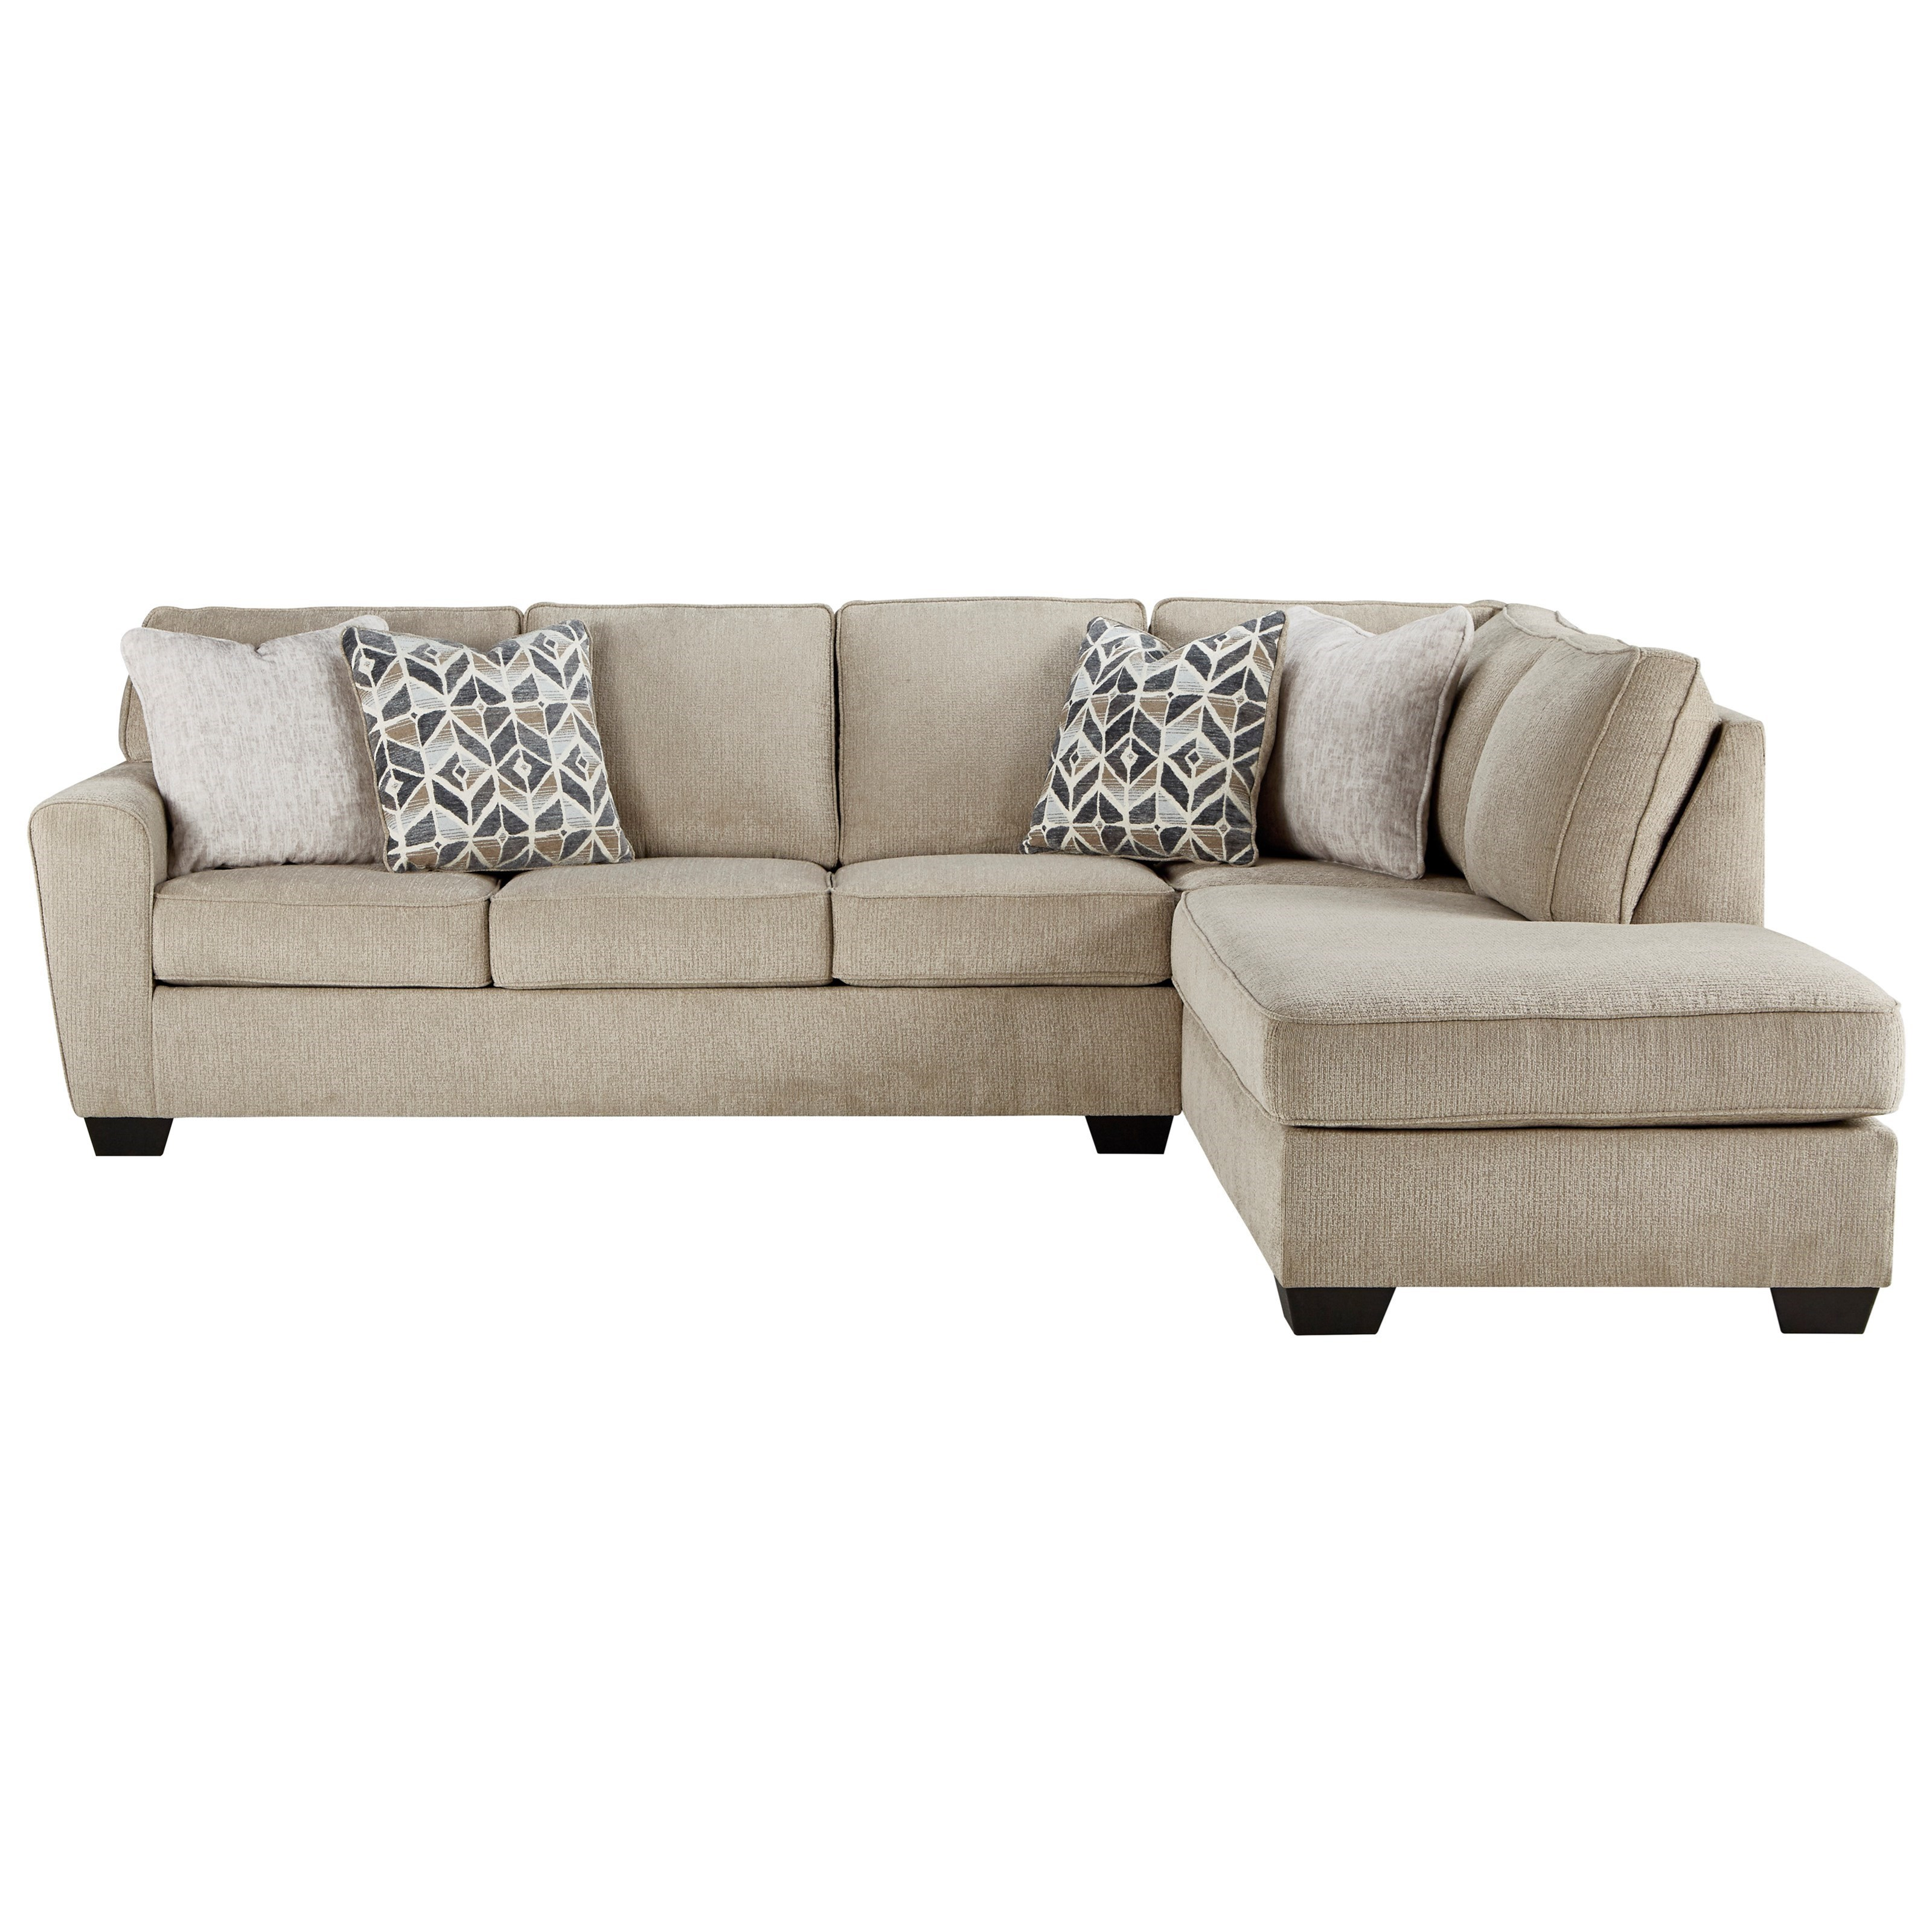 Decelle 2-Piece Sectional with Chaise by Signature at Walker's Furniture